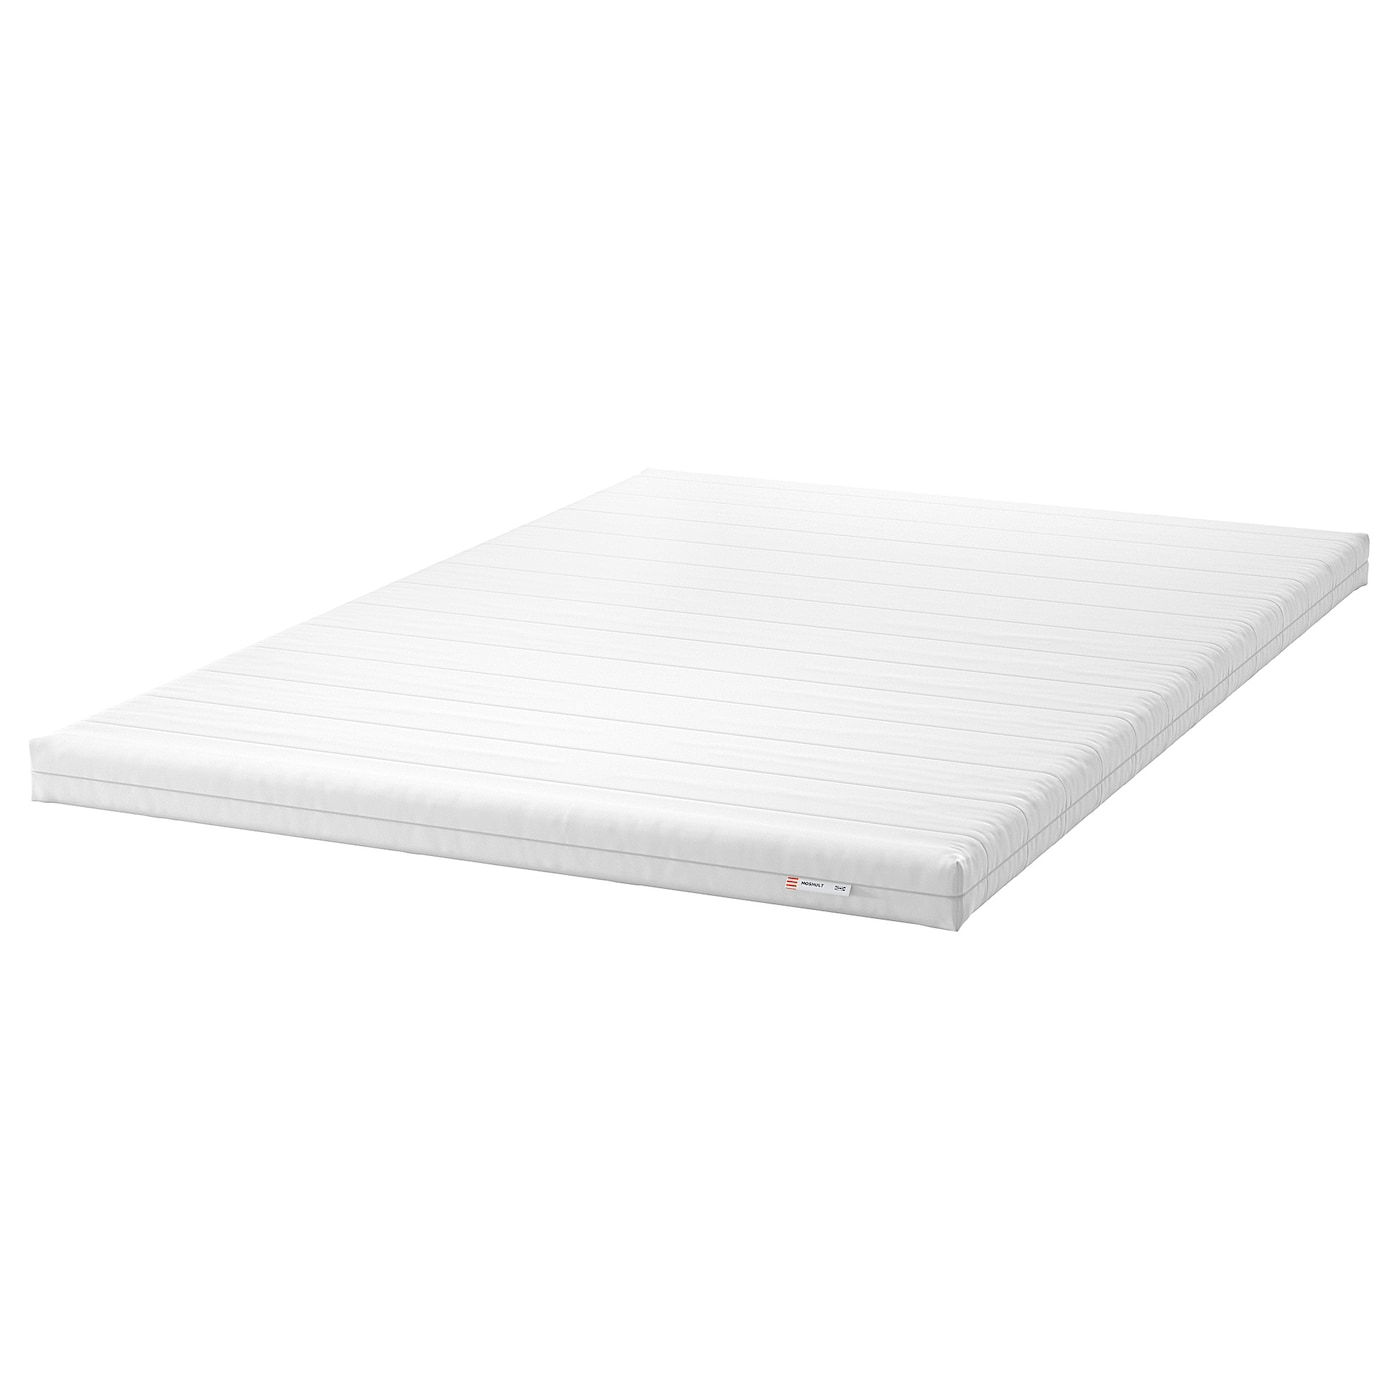 moshult foam mattress firm white 140 x 200 cm ikea. Black Bedroom Furniture Sets. Home Design Ideas